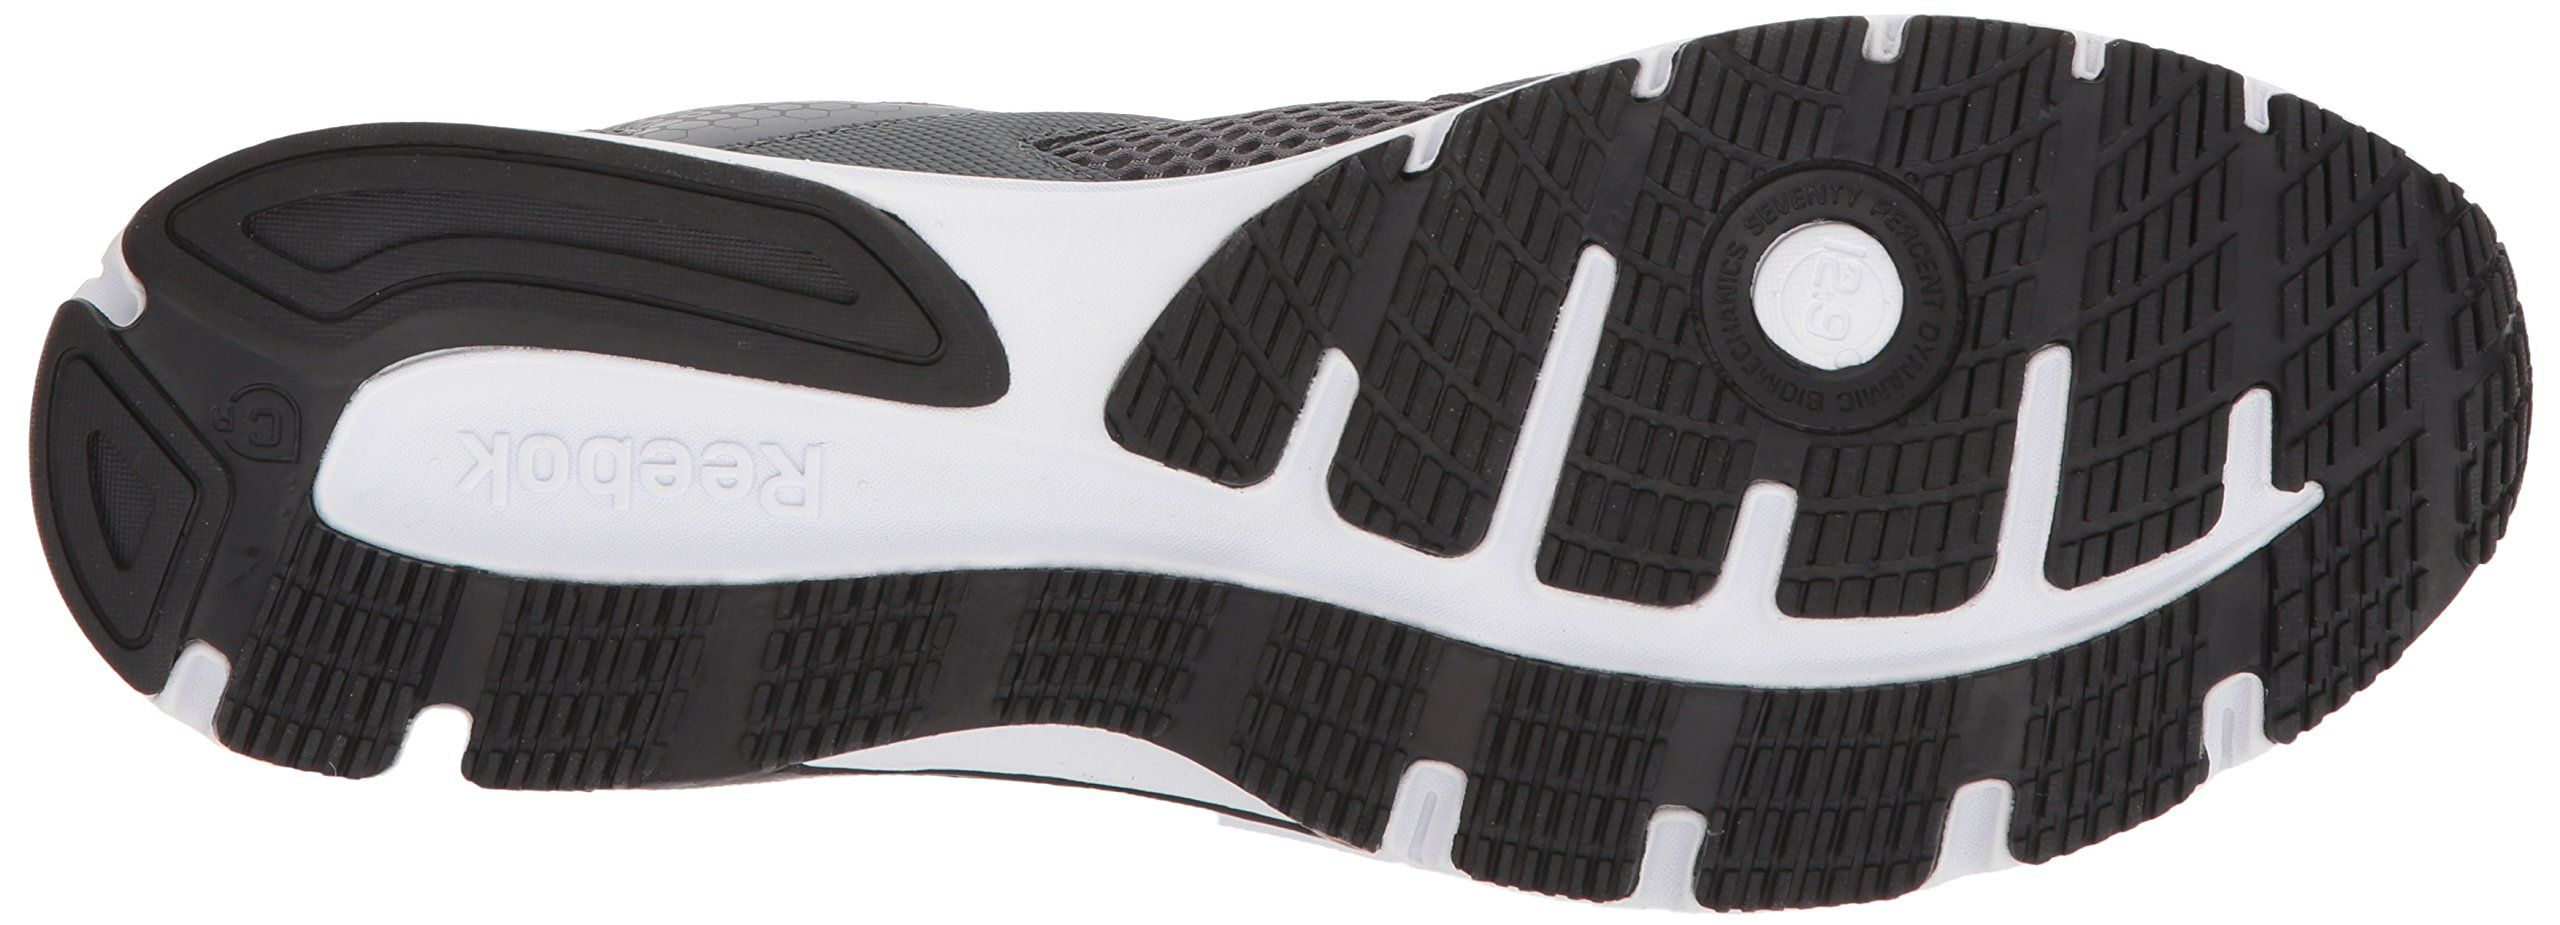 71e599653f6 Reebok Mens Runner 2.0 MT Running Shoe Alloy Black Ash Grey White 11 M US    Check out this great product. (This is an affiliate link)